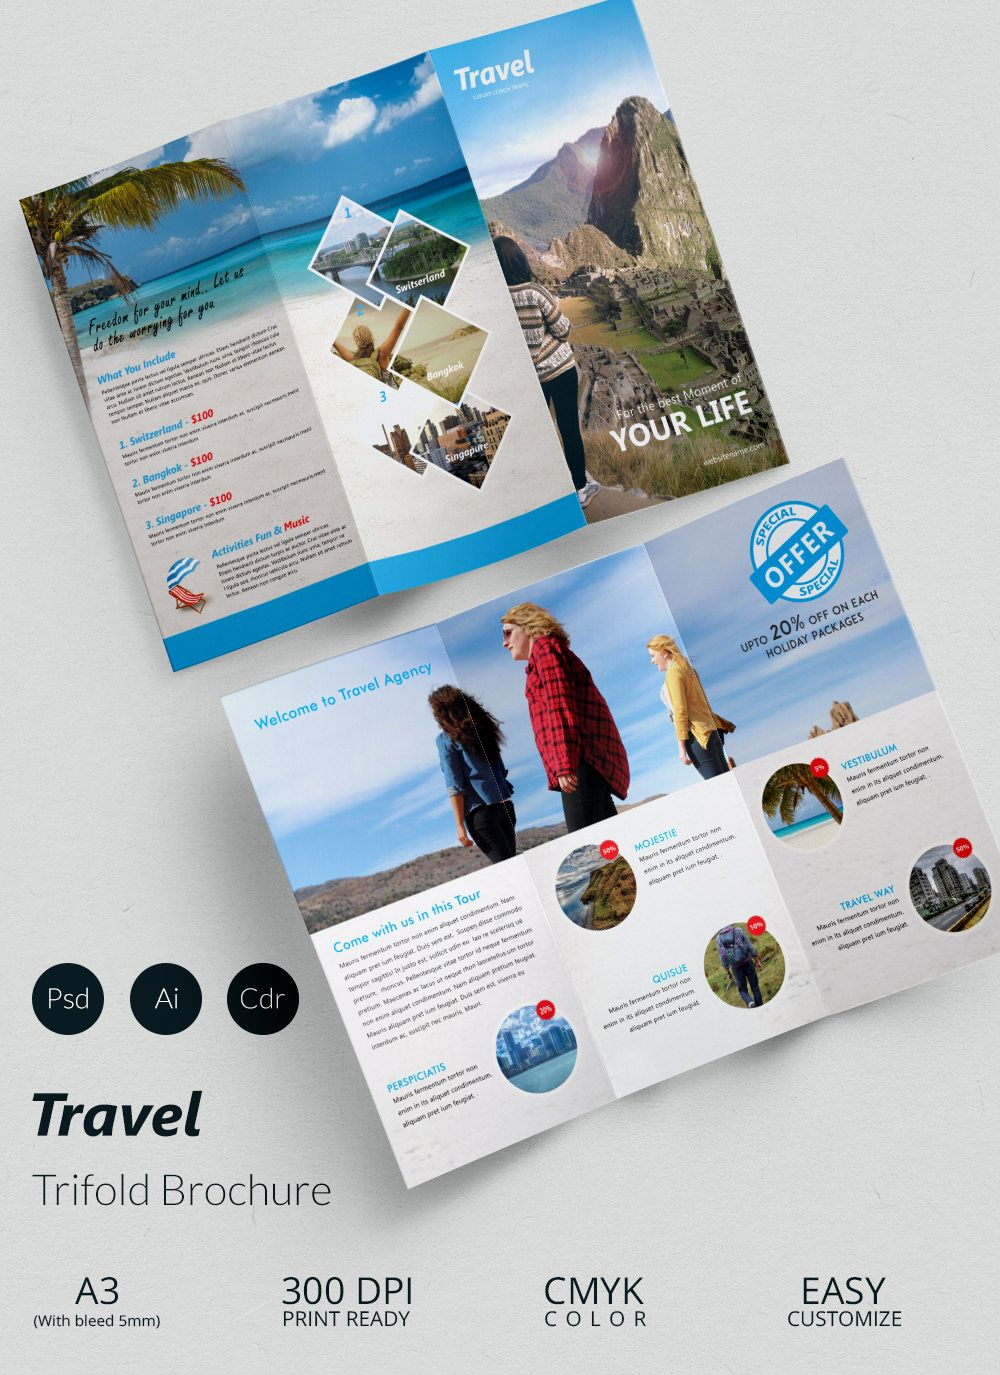 travel a3 trifold brochure template - Folding Brochure Template Free